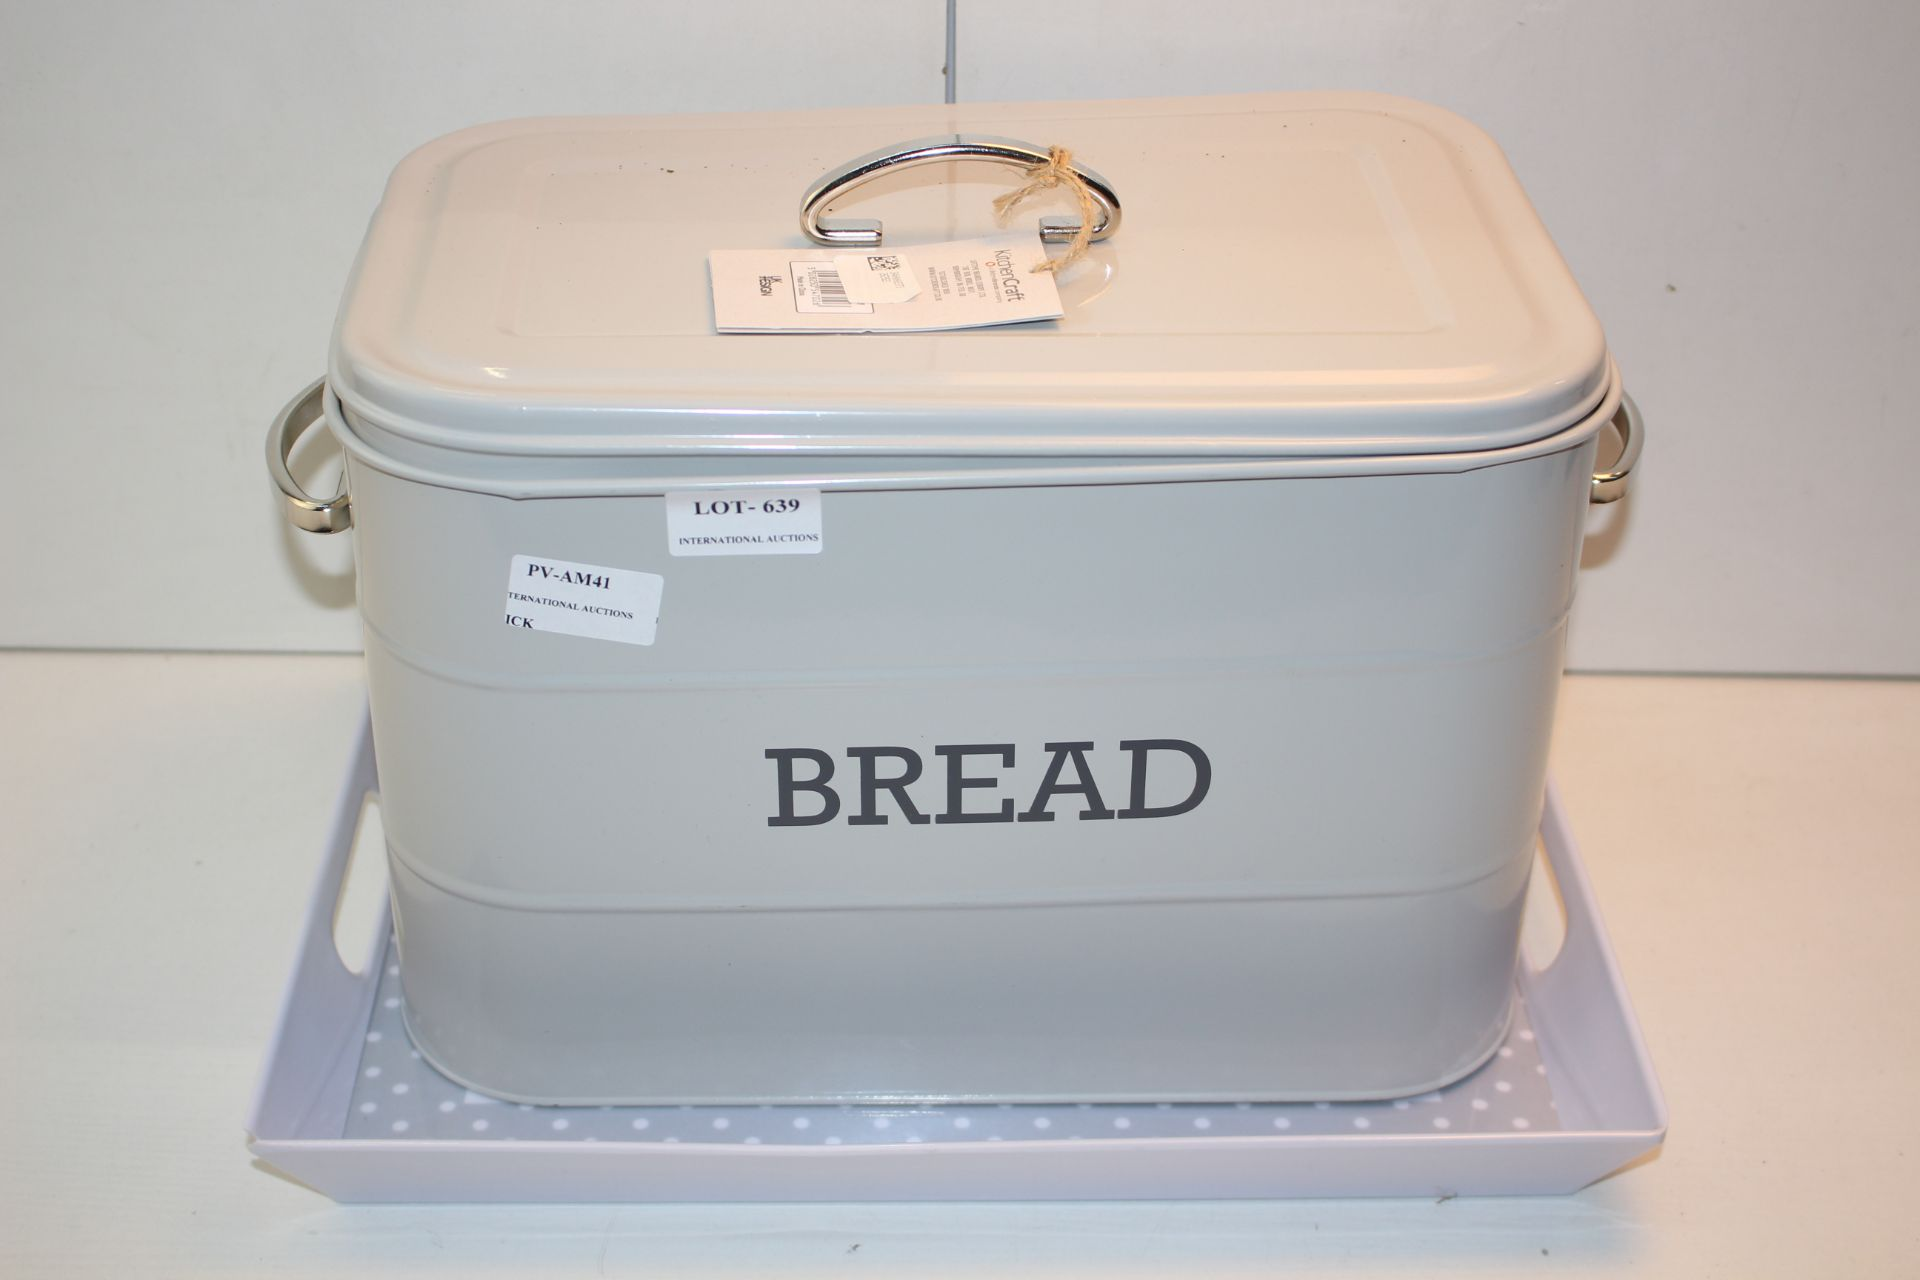 X2 ITEMS INCLUDING TRAYS AND BREAD BINCondition ReportAppraisal Available on Request- All Items